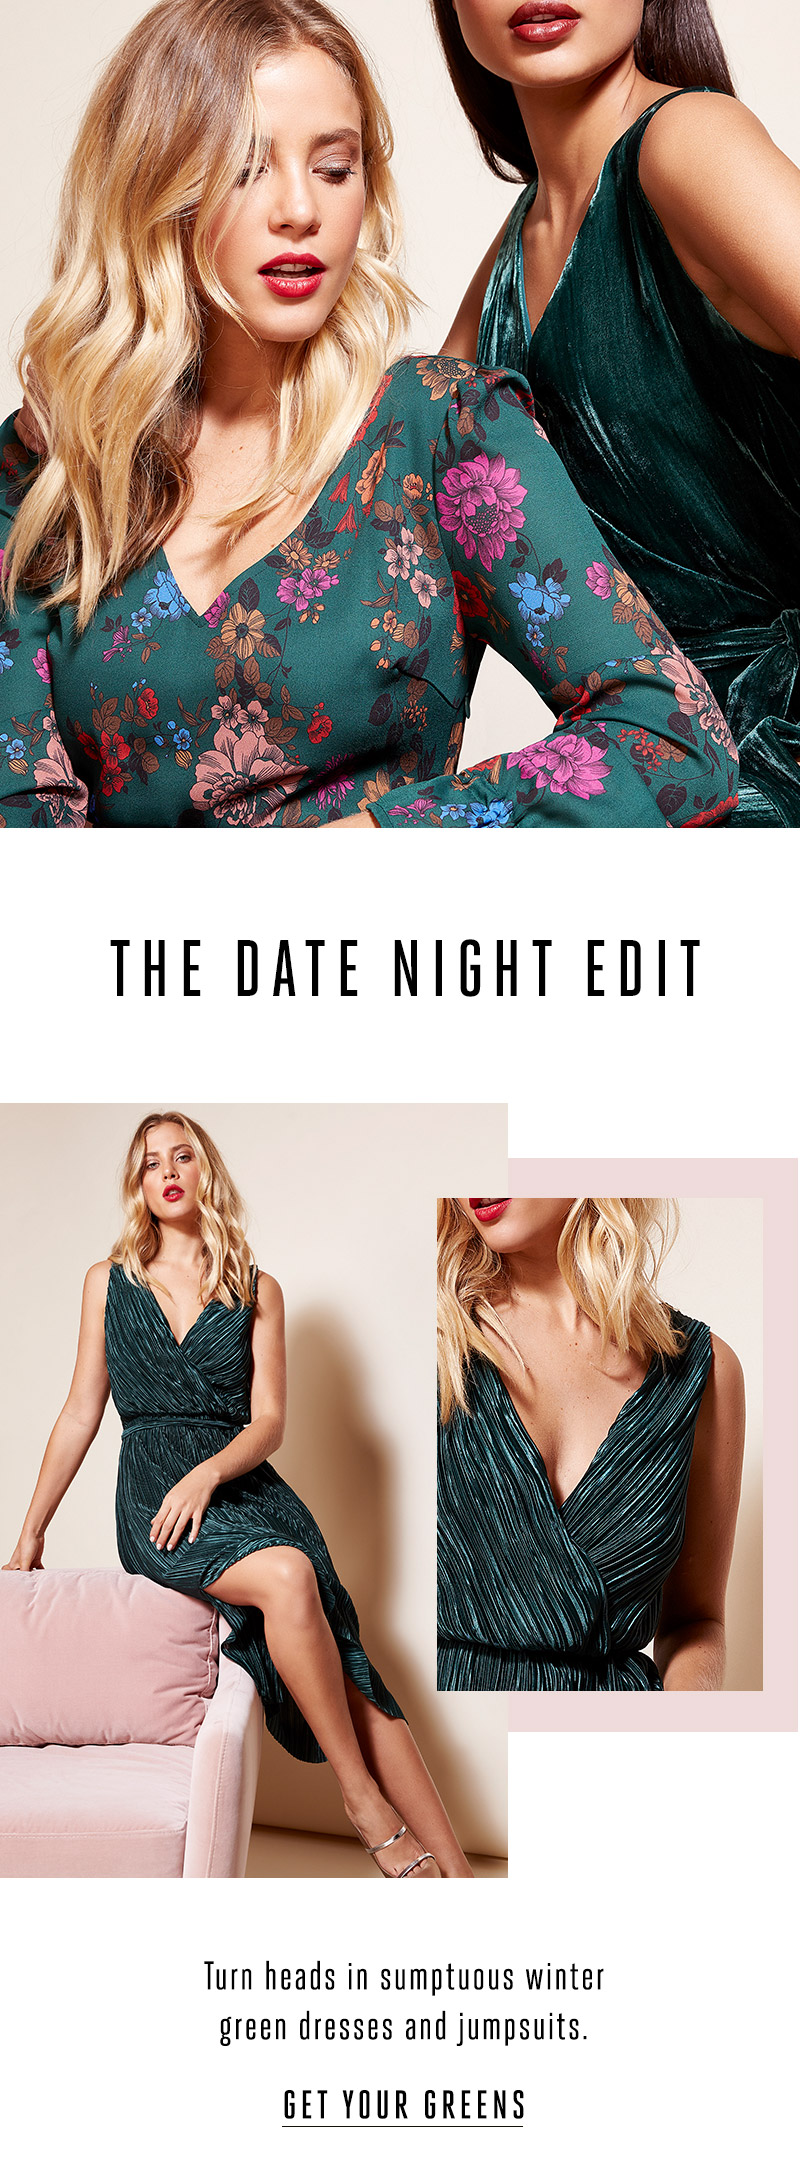 The date night edit. Get your greens.